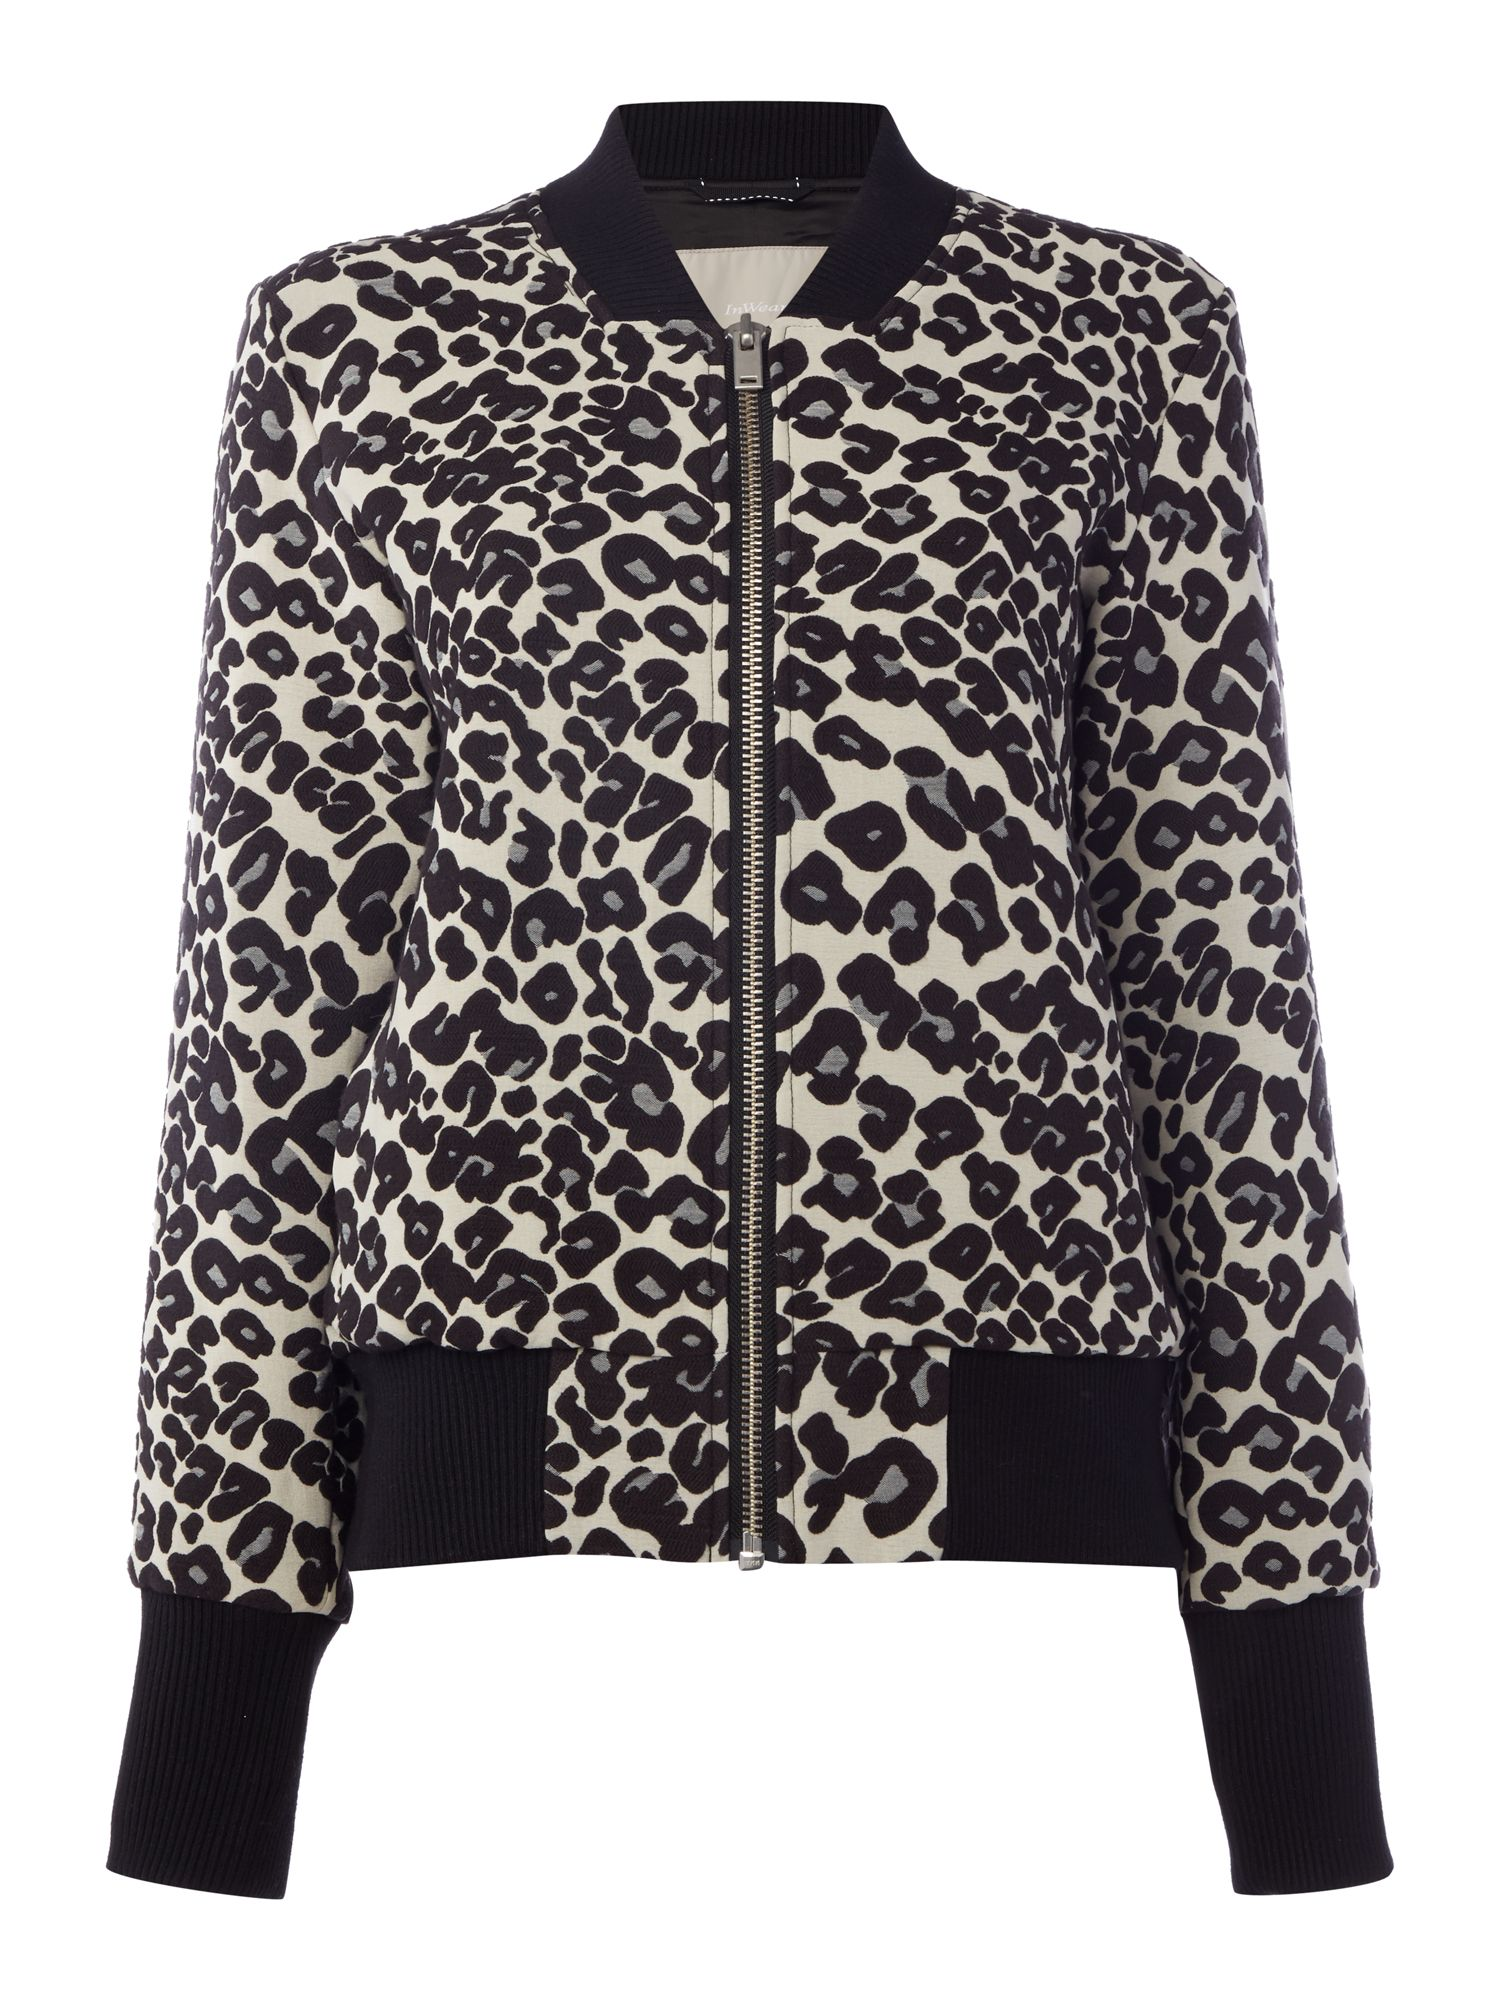 In Wear Animal print bomber jacket, Leopard